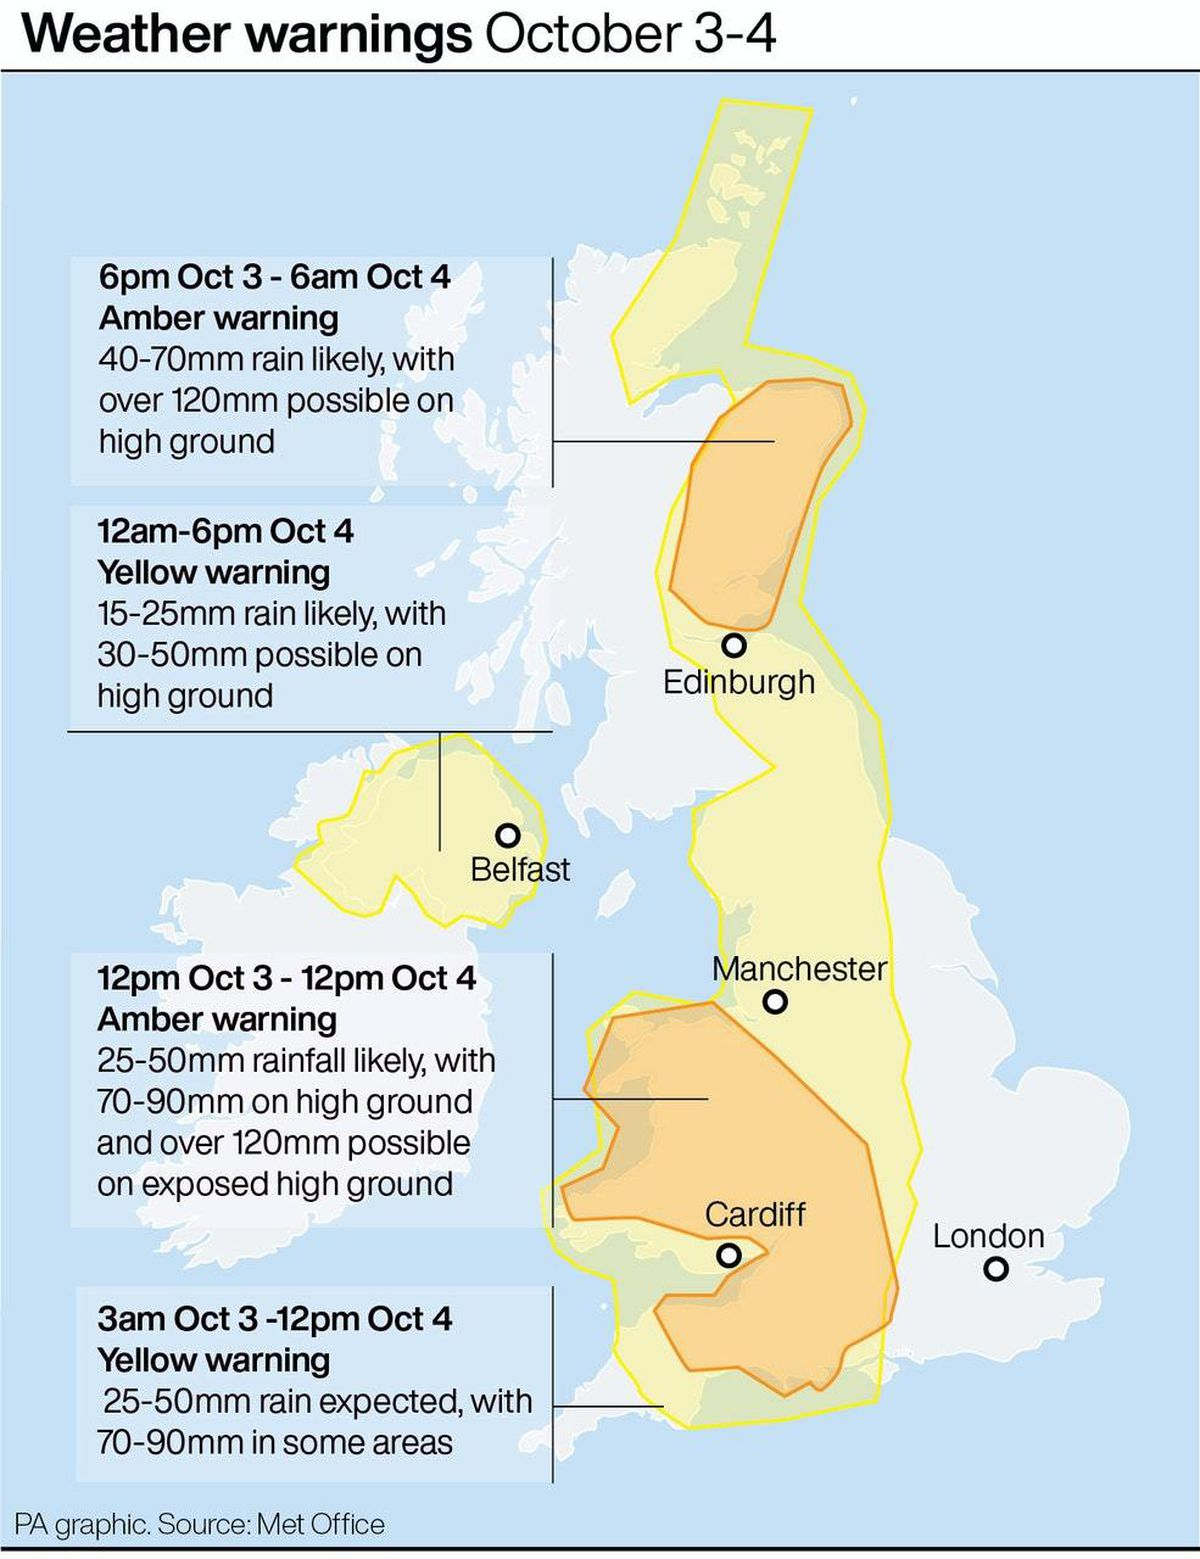 Weather warnings in the UK this weekend